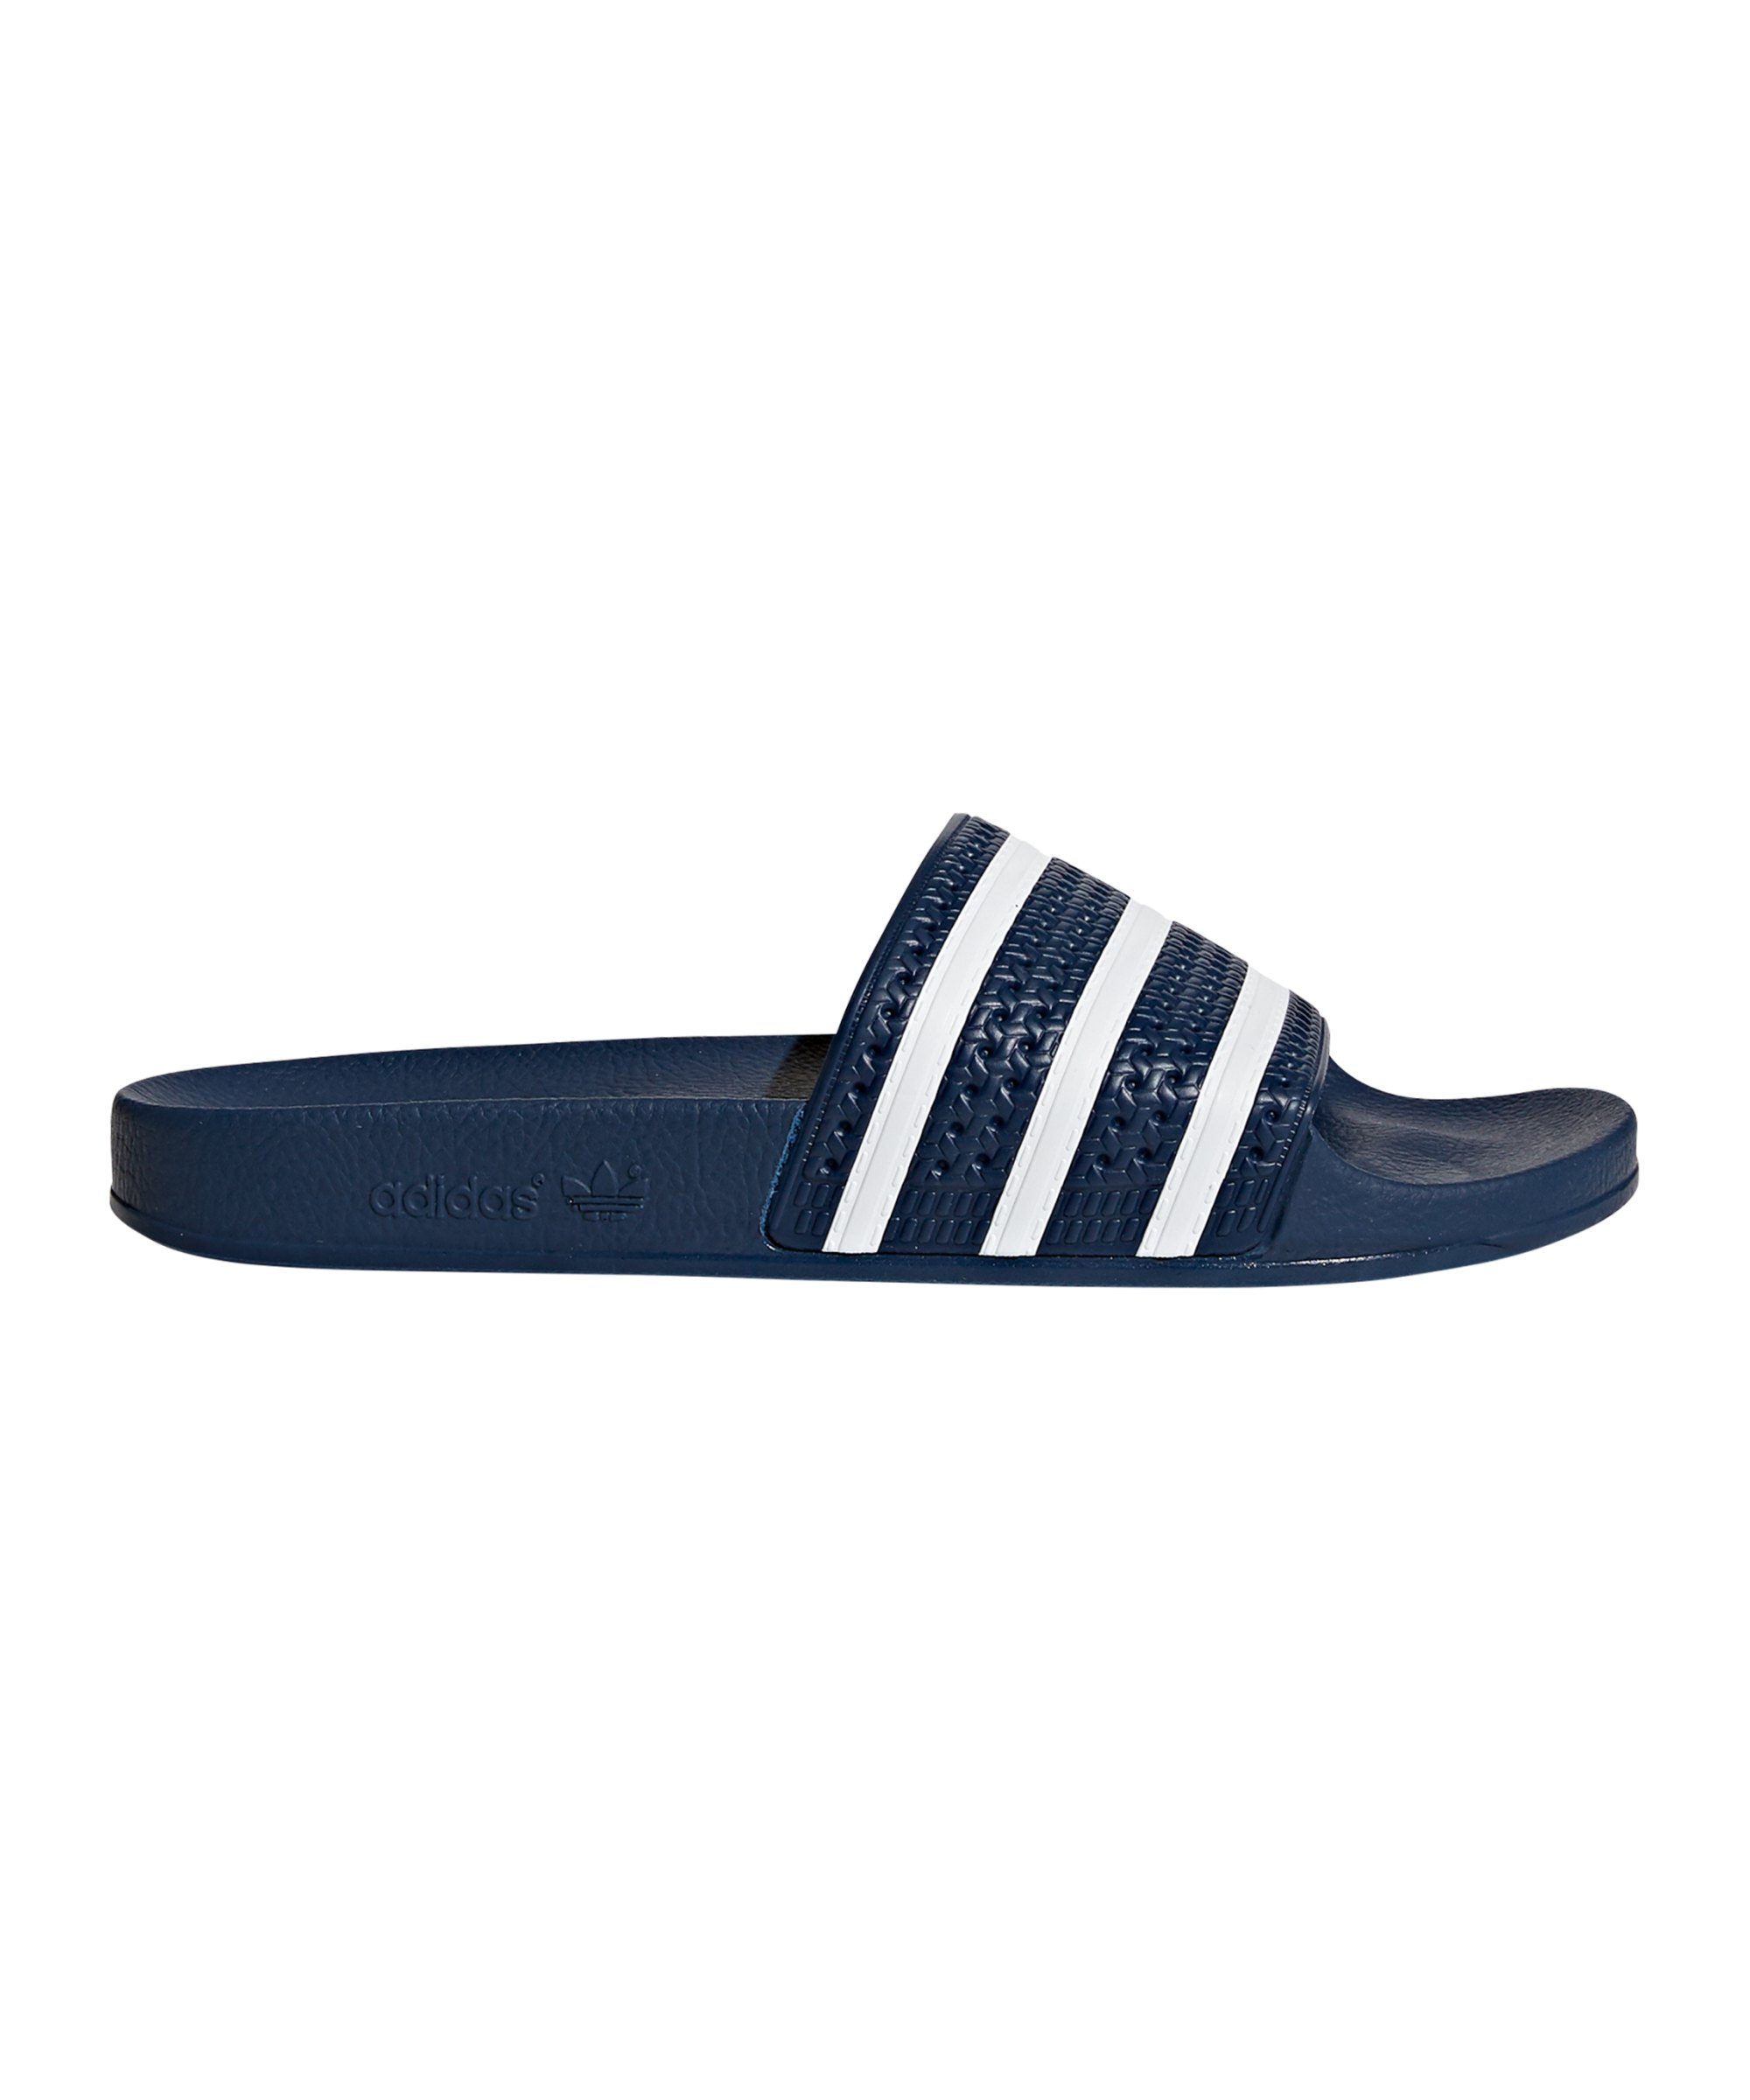 newest 15ec2 a568c adidas Originals Adilette Blau Weiss - blau